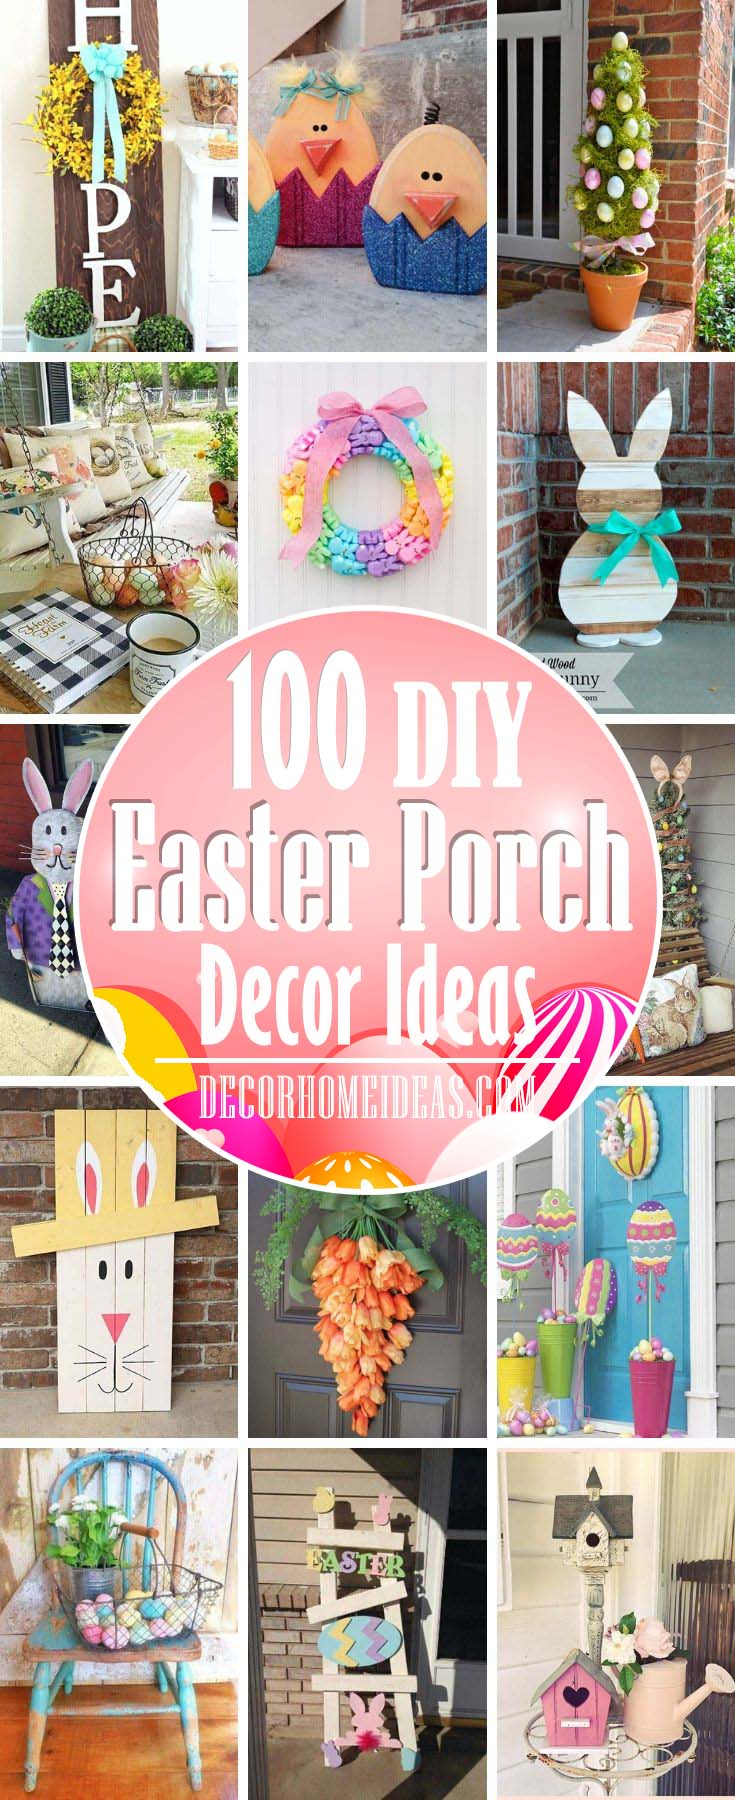 DIY Easter Porch Decor Ideas #Easter #porch #diy #decorhomeideas